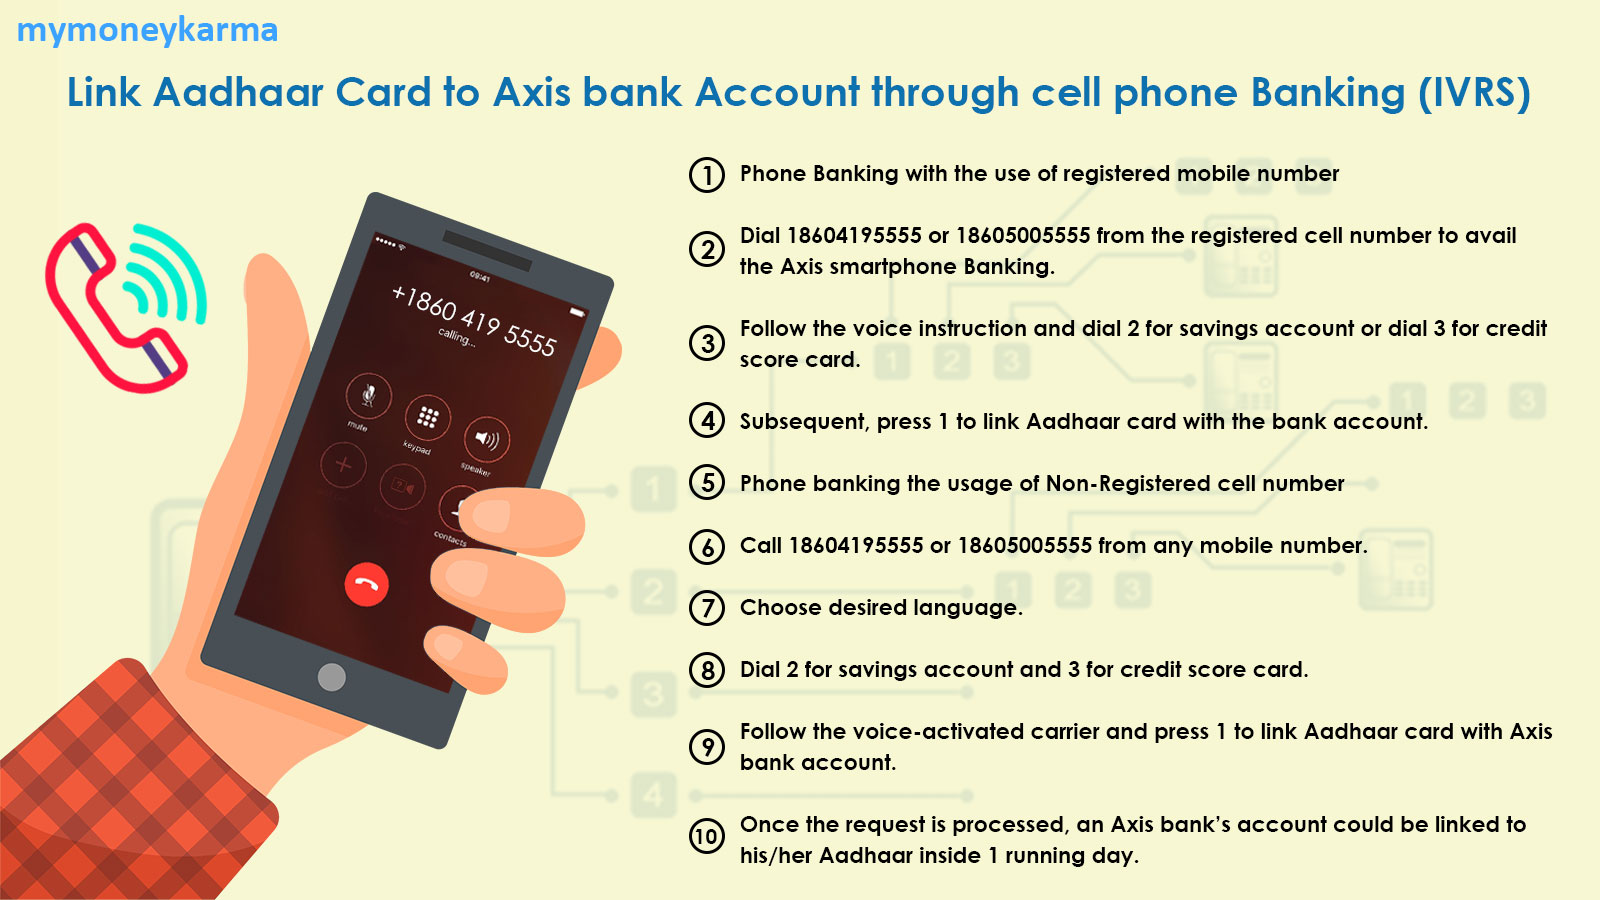 How to Link Aadhaar Card to Axis Bank Account - mymoneykarma